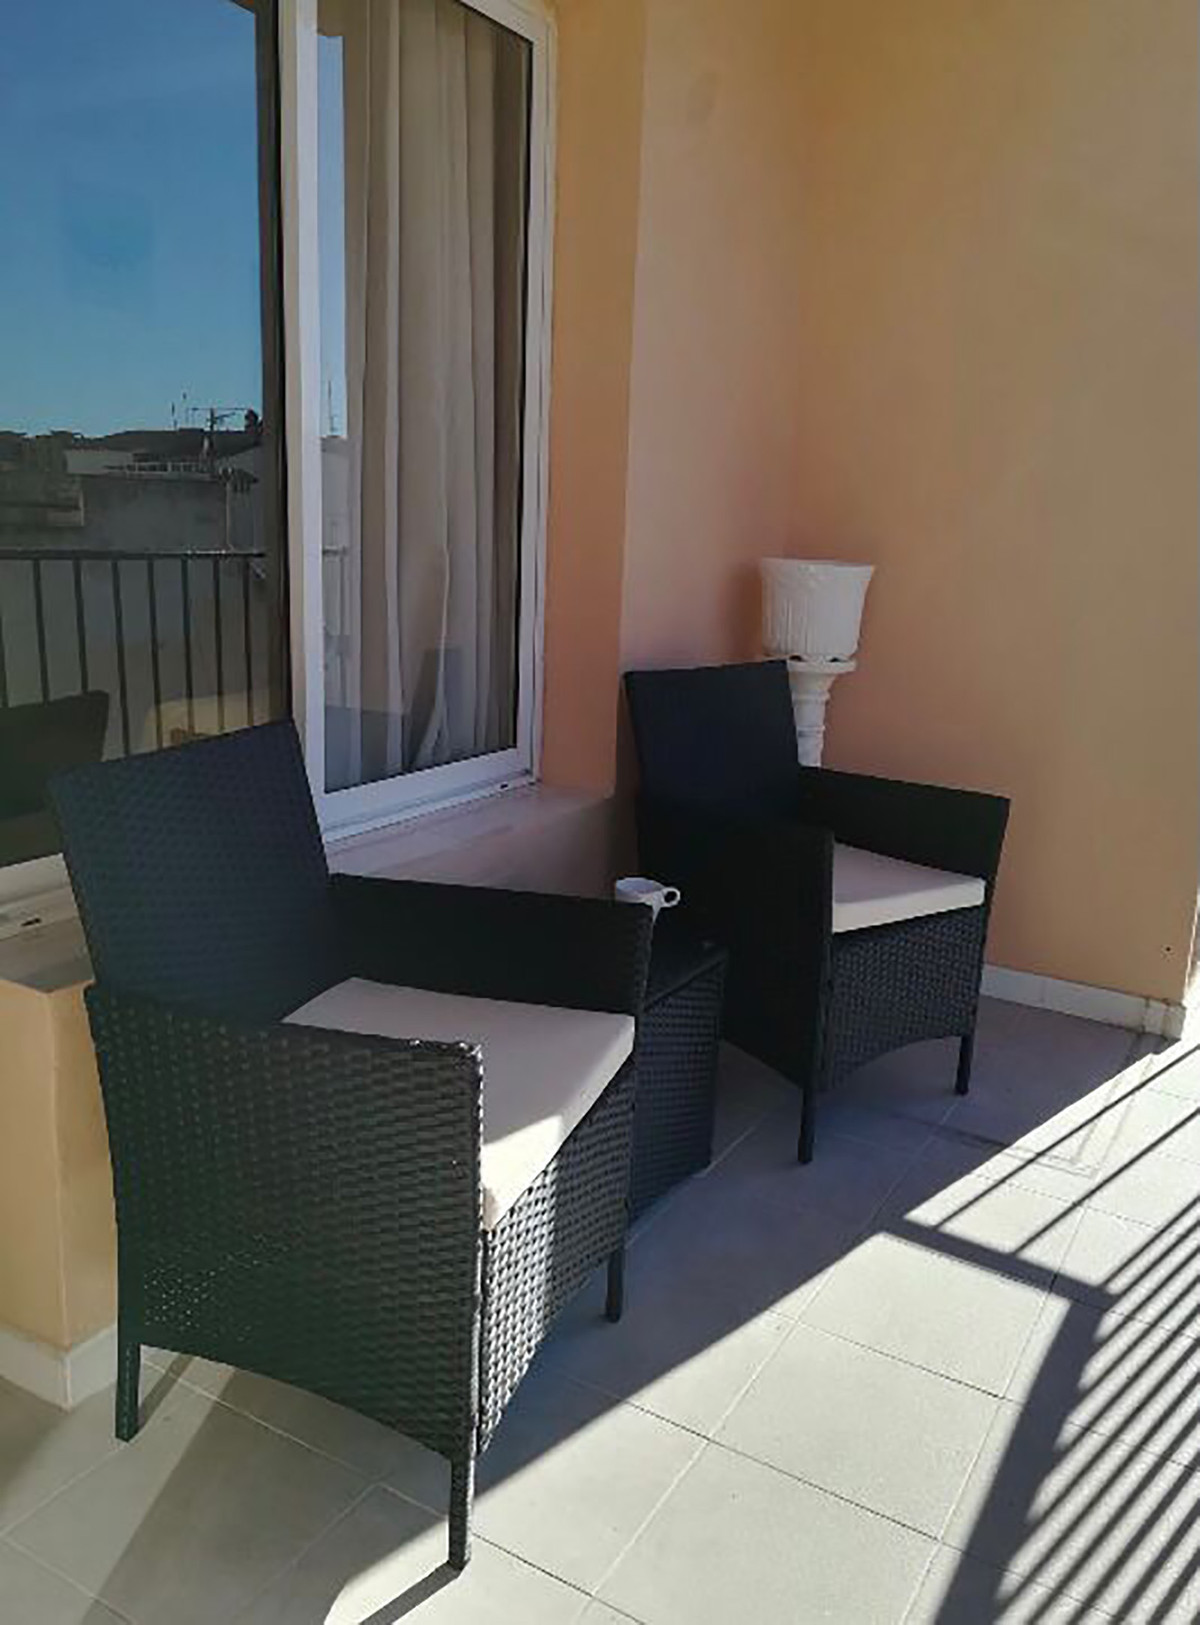 Middle Floor Apartment, Fuengirola, 50m from plaza de la constitucion Costa del Sol. 2.5 Bedrooms, 1, Spain